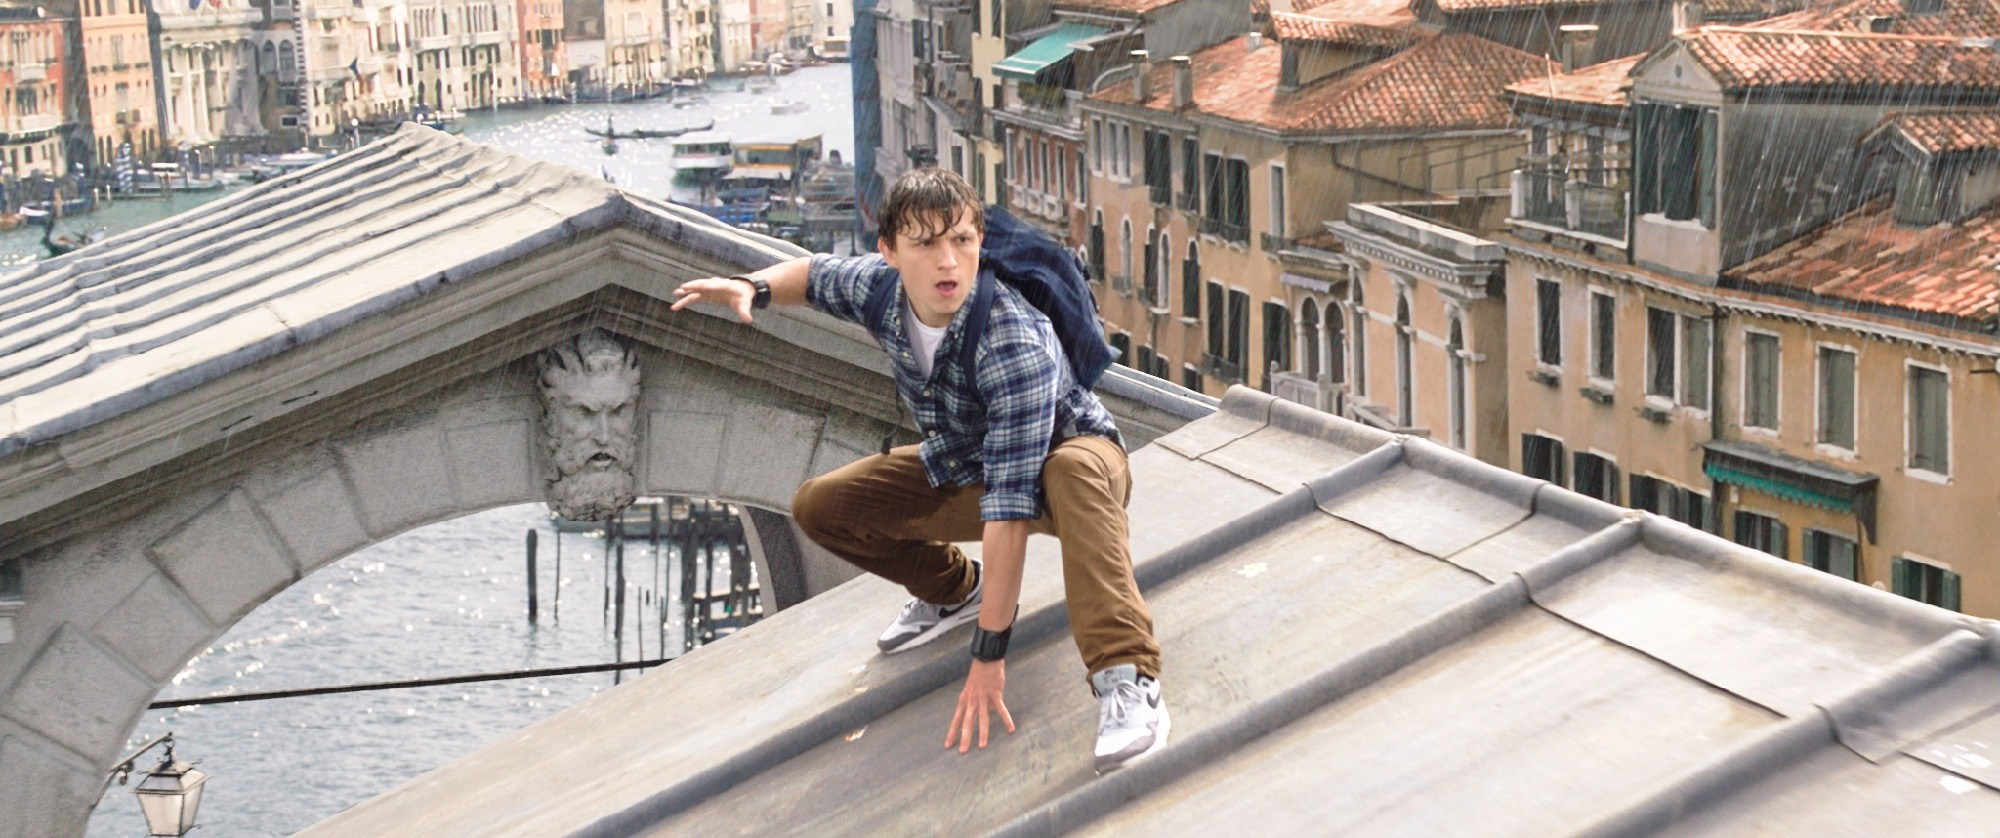 Disney & Sony Cut A Deal For Rights To Stream 'Spider-Man' Films